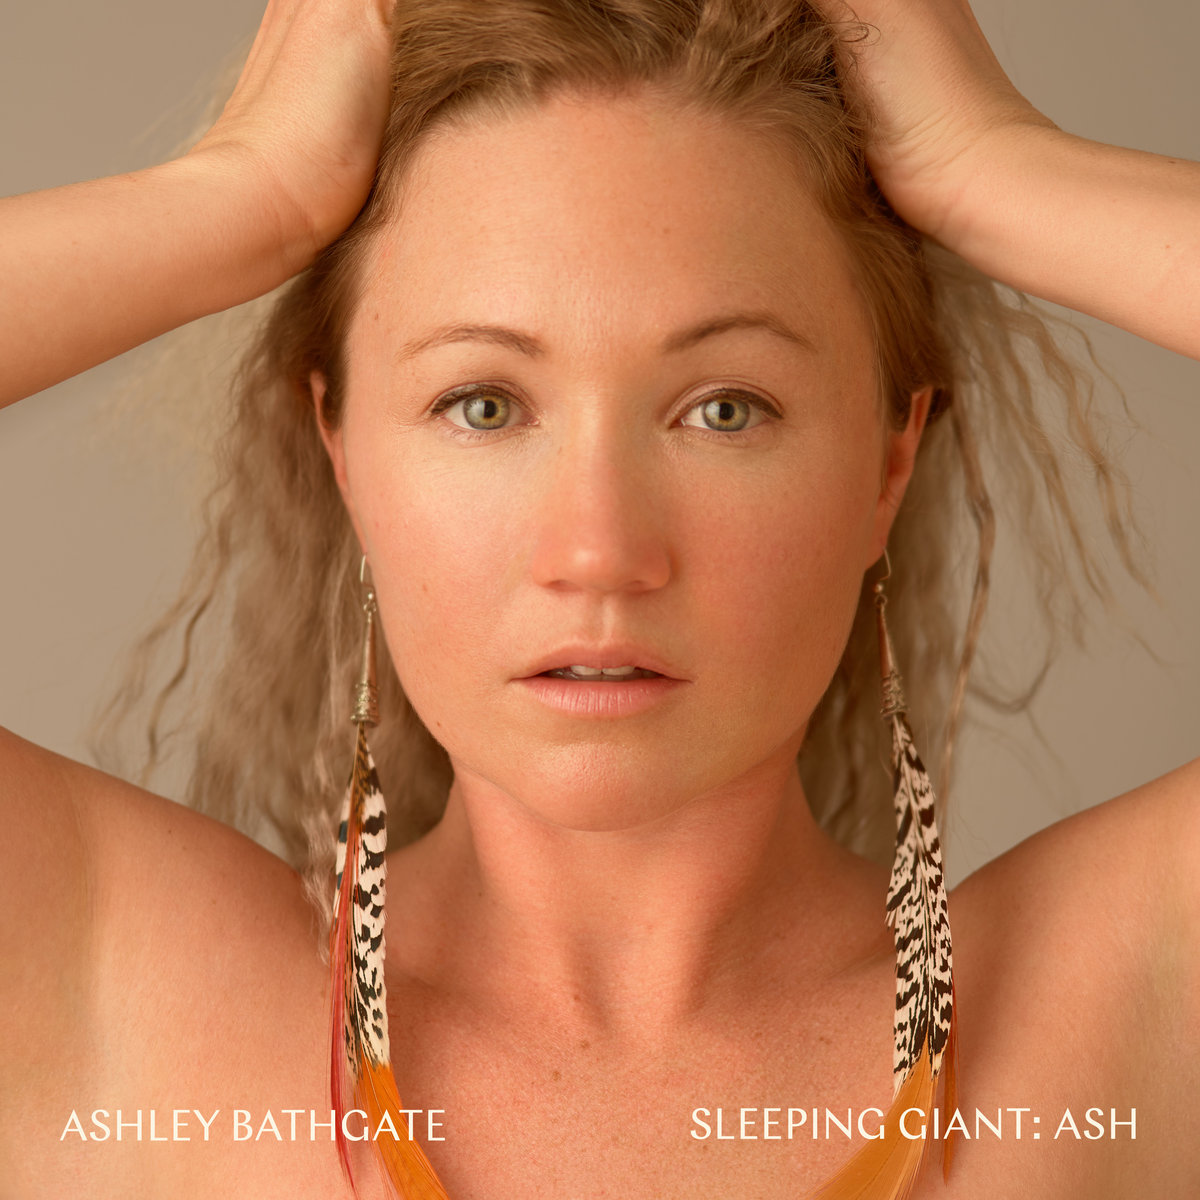 Ashley Bathgate: ASH